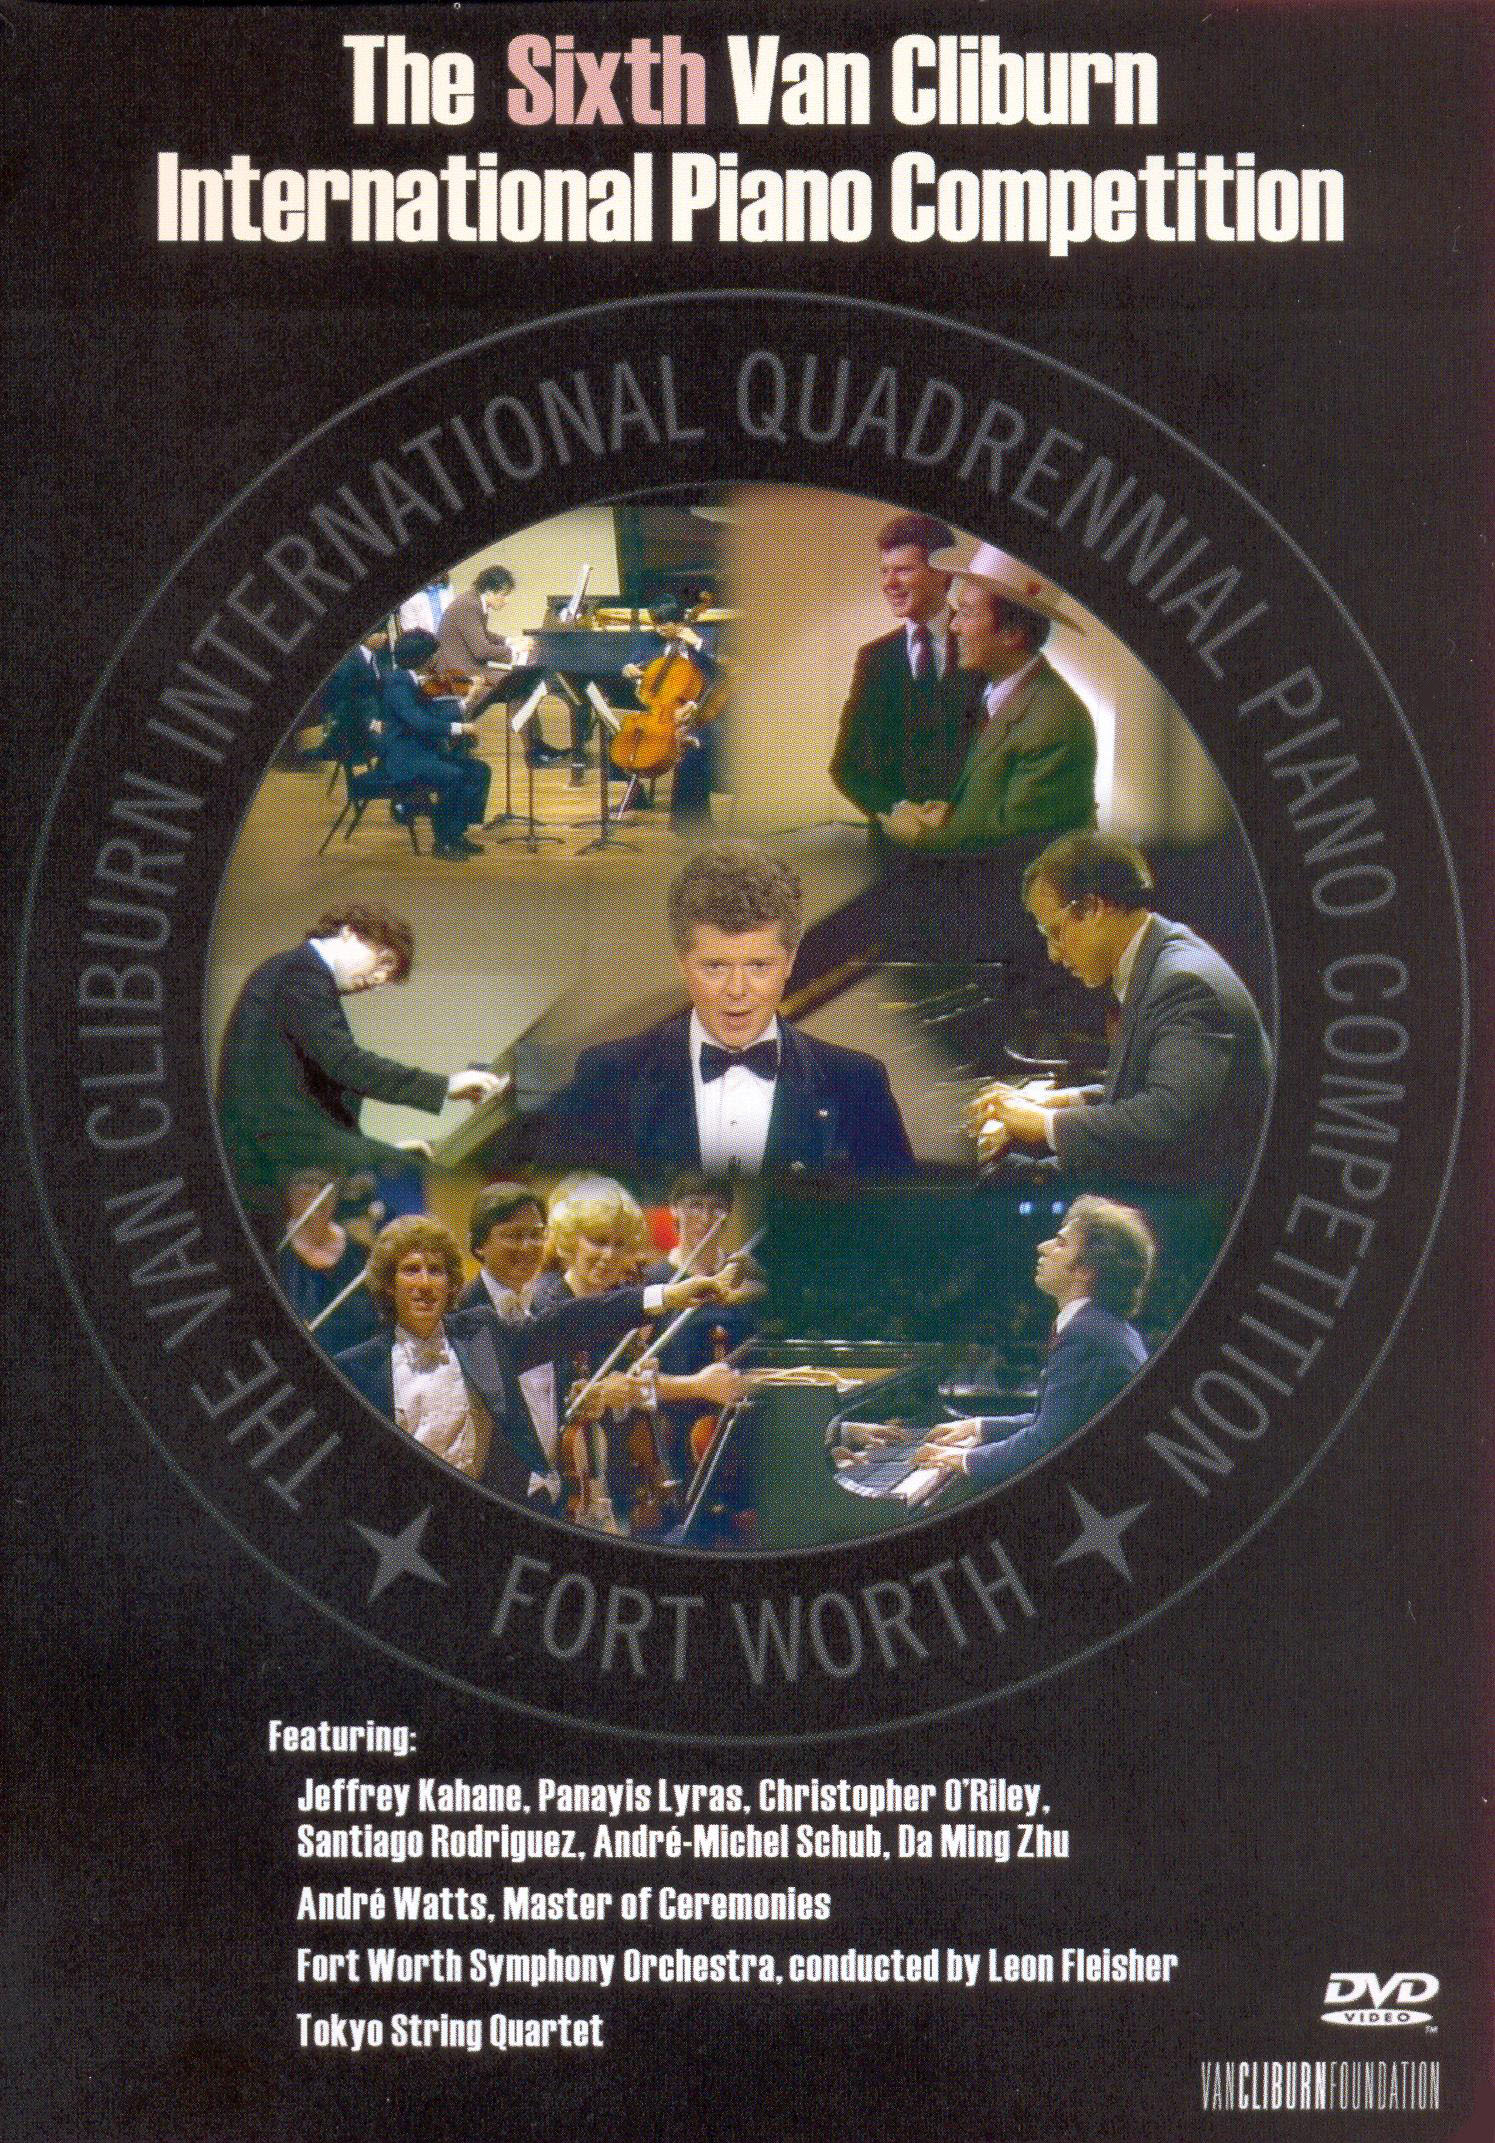 The Sixth Van Cliburn International Piano Competition